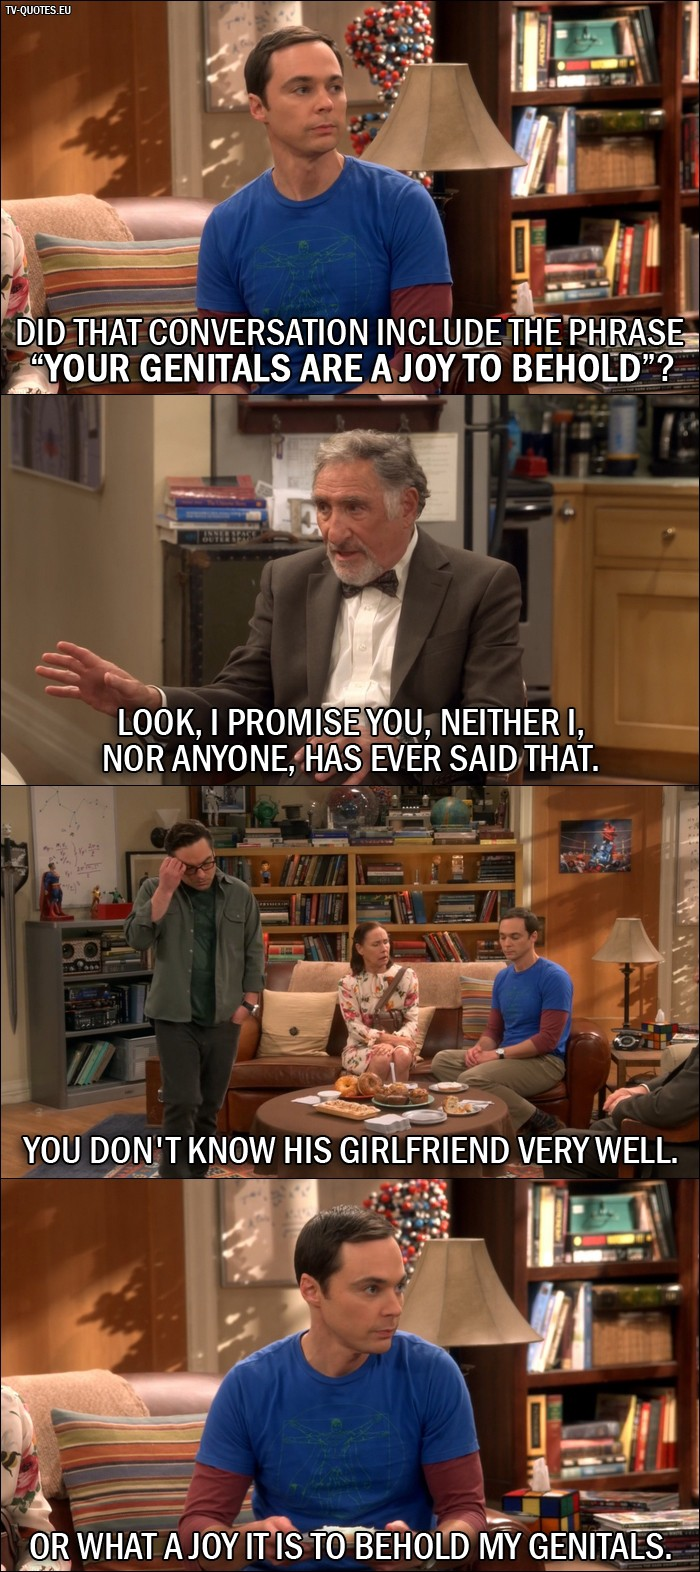 """The Big Bang Theory Quote from 10x01 - Sheldon Cooper: Did that conversation include the phrase """"your genitals are a joy to behold""""? Mary Cooper: That's enough! Alfred Hofstadter: Look, I promise you, neither I, nor anyone, has ever said that. Leonard Hofstadter: You don't know his girlfriend very well. Sheldon Cooper: Or what a joy it is to behold my genitals."""